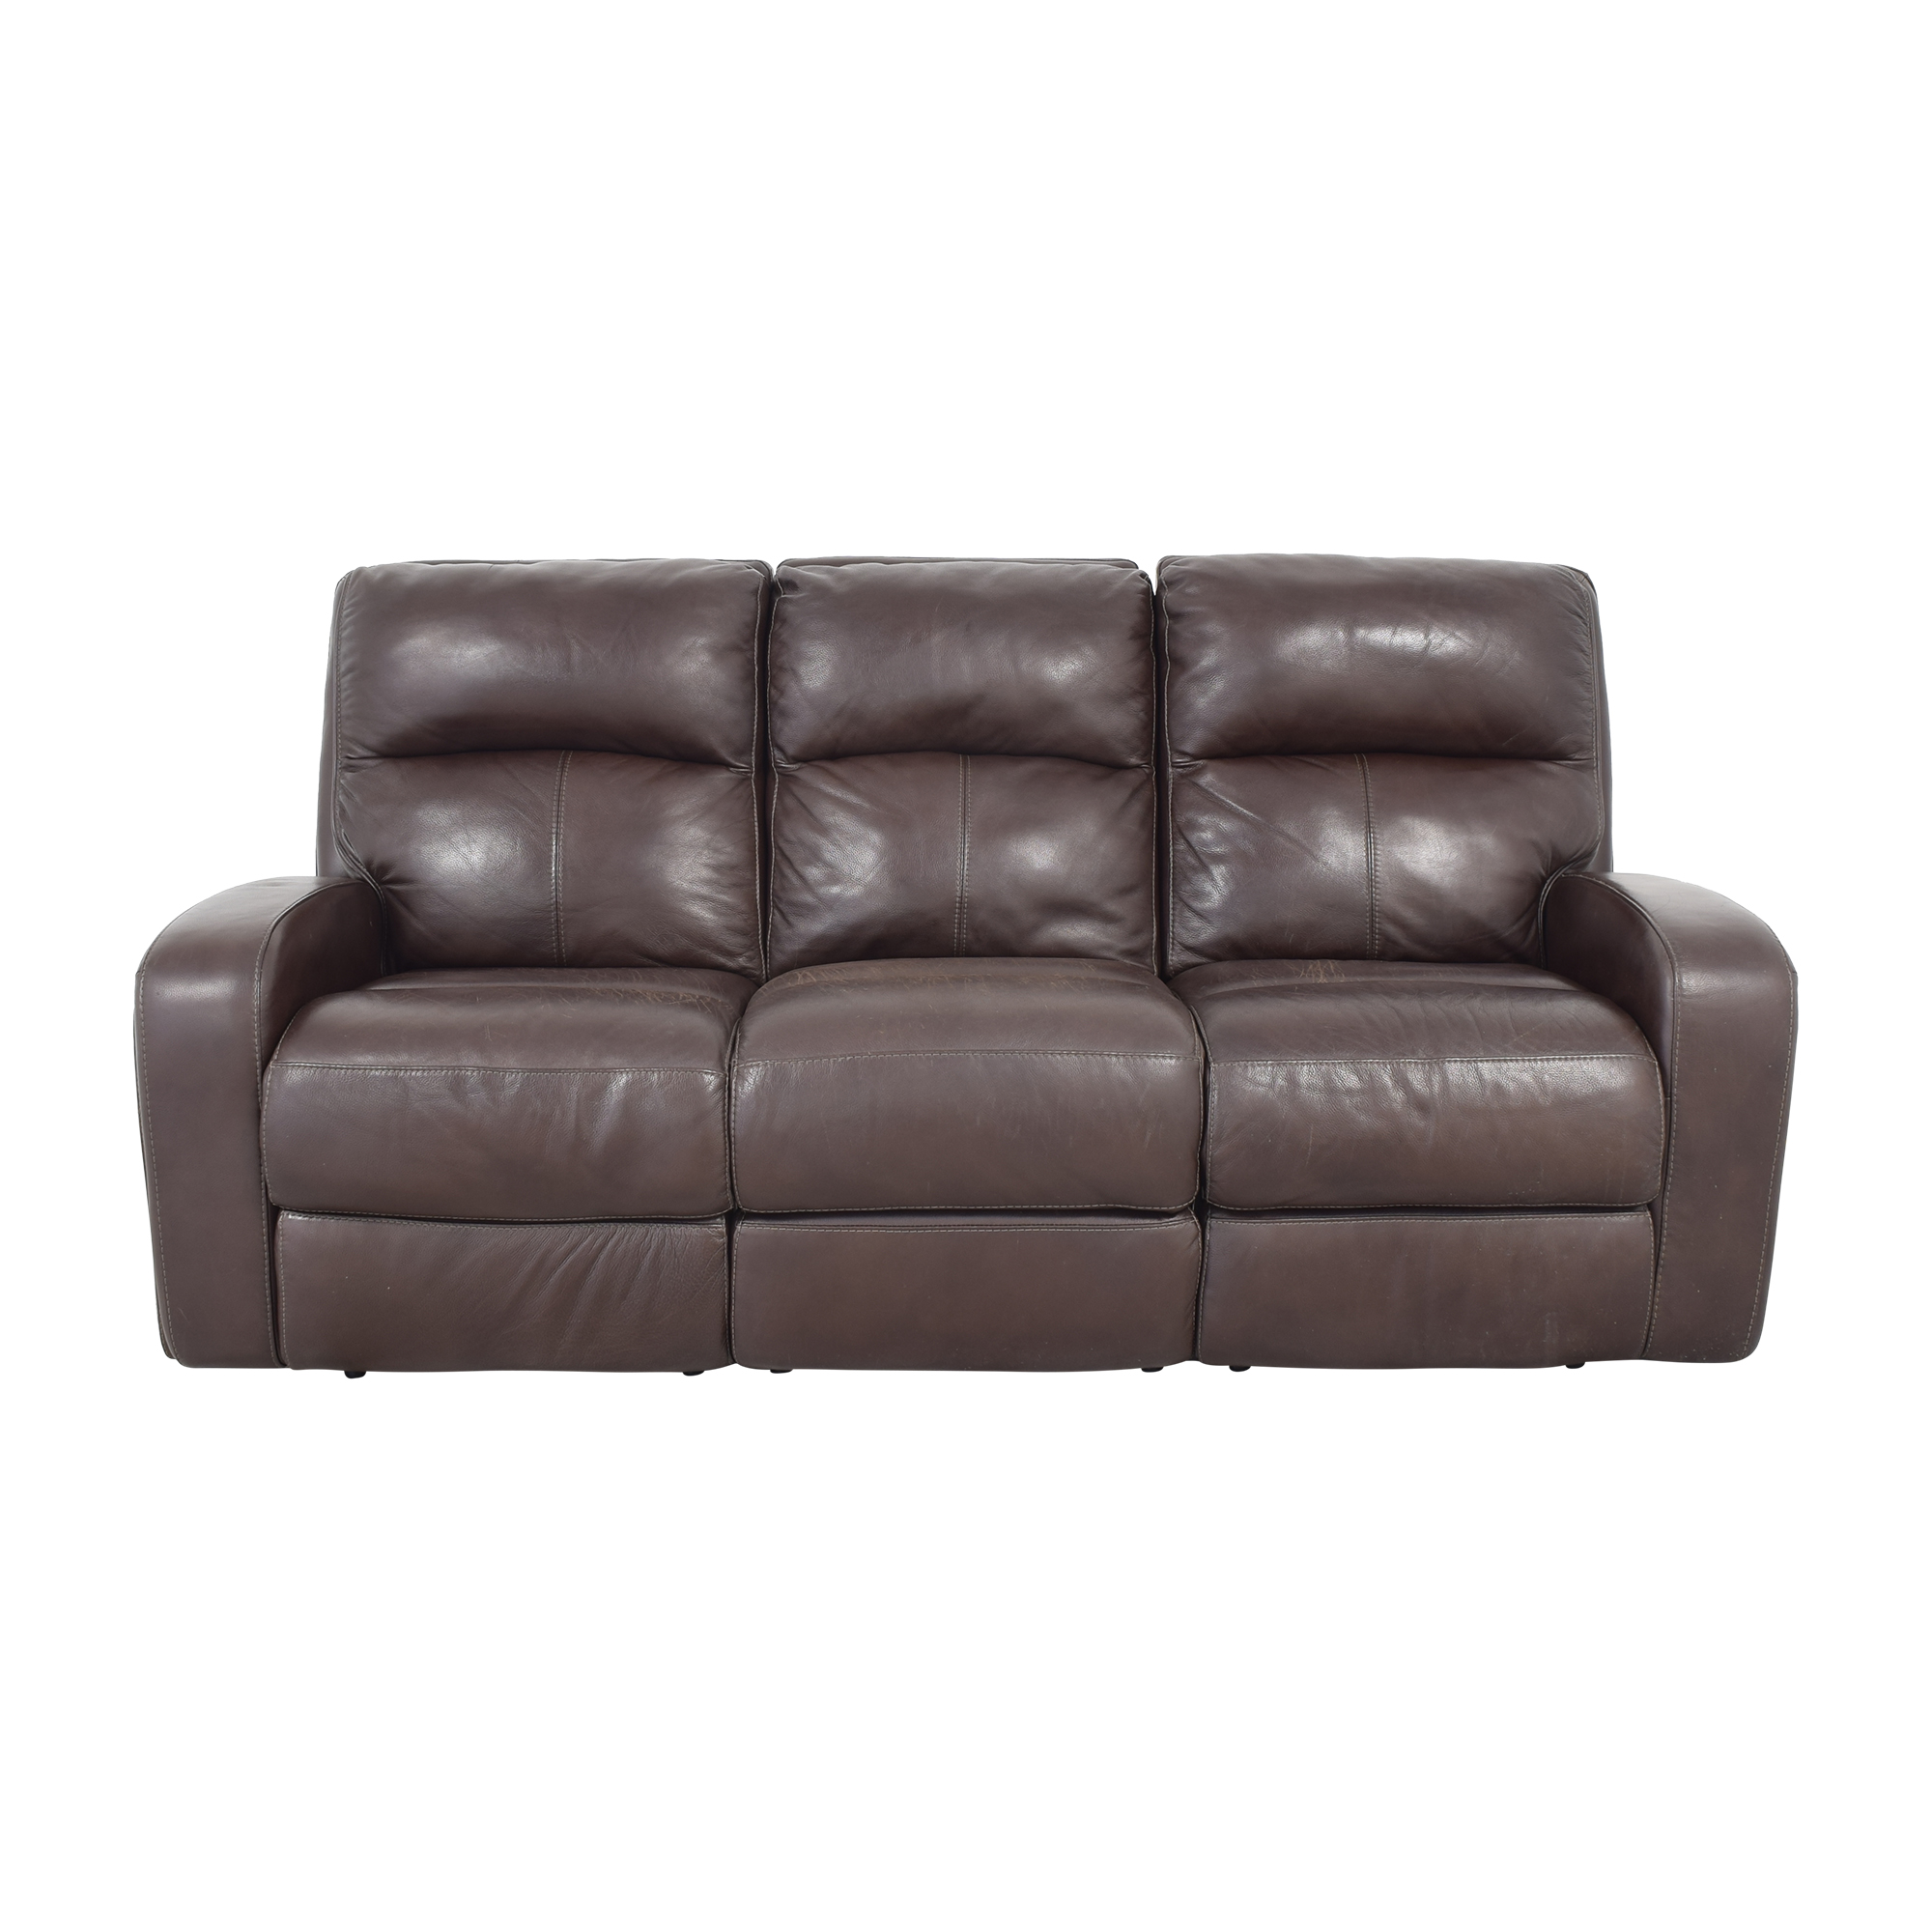 Macy's Macy's Goodwick Leather Dual Power Motion Sofa Classic Sofas